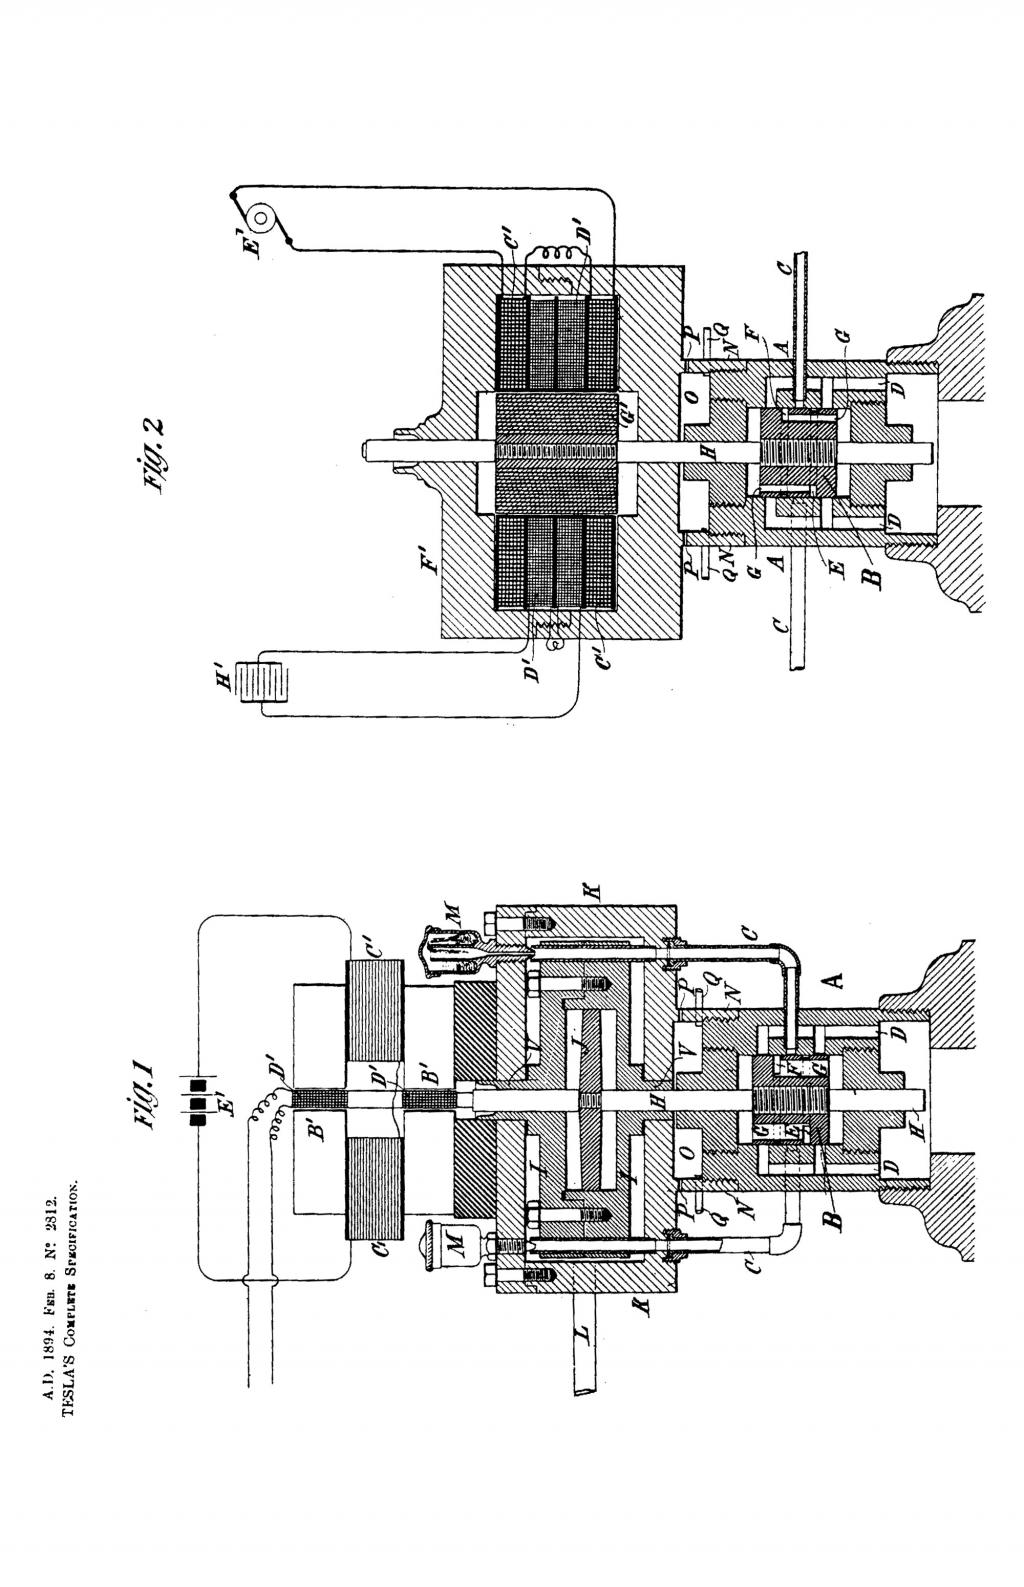 Nikola Tesla British Patent 2812 - Improvements in Methods of and Apparatus for the Generation of Electric Currents of Defined Period - Image 1